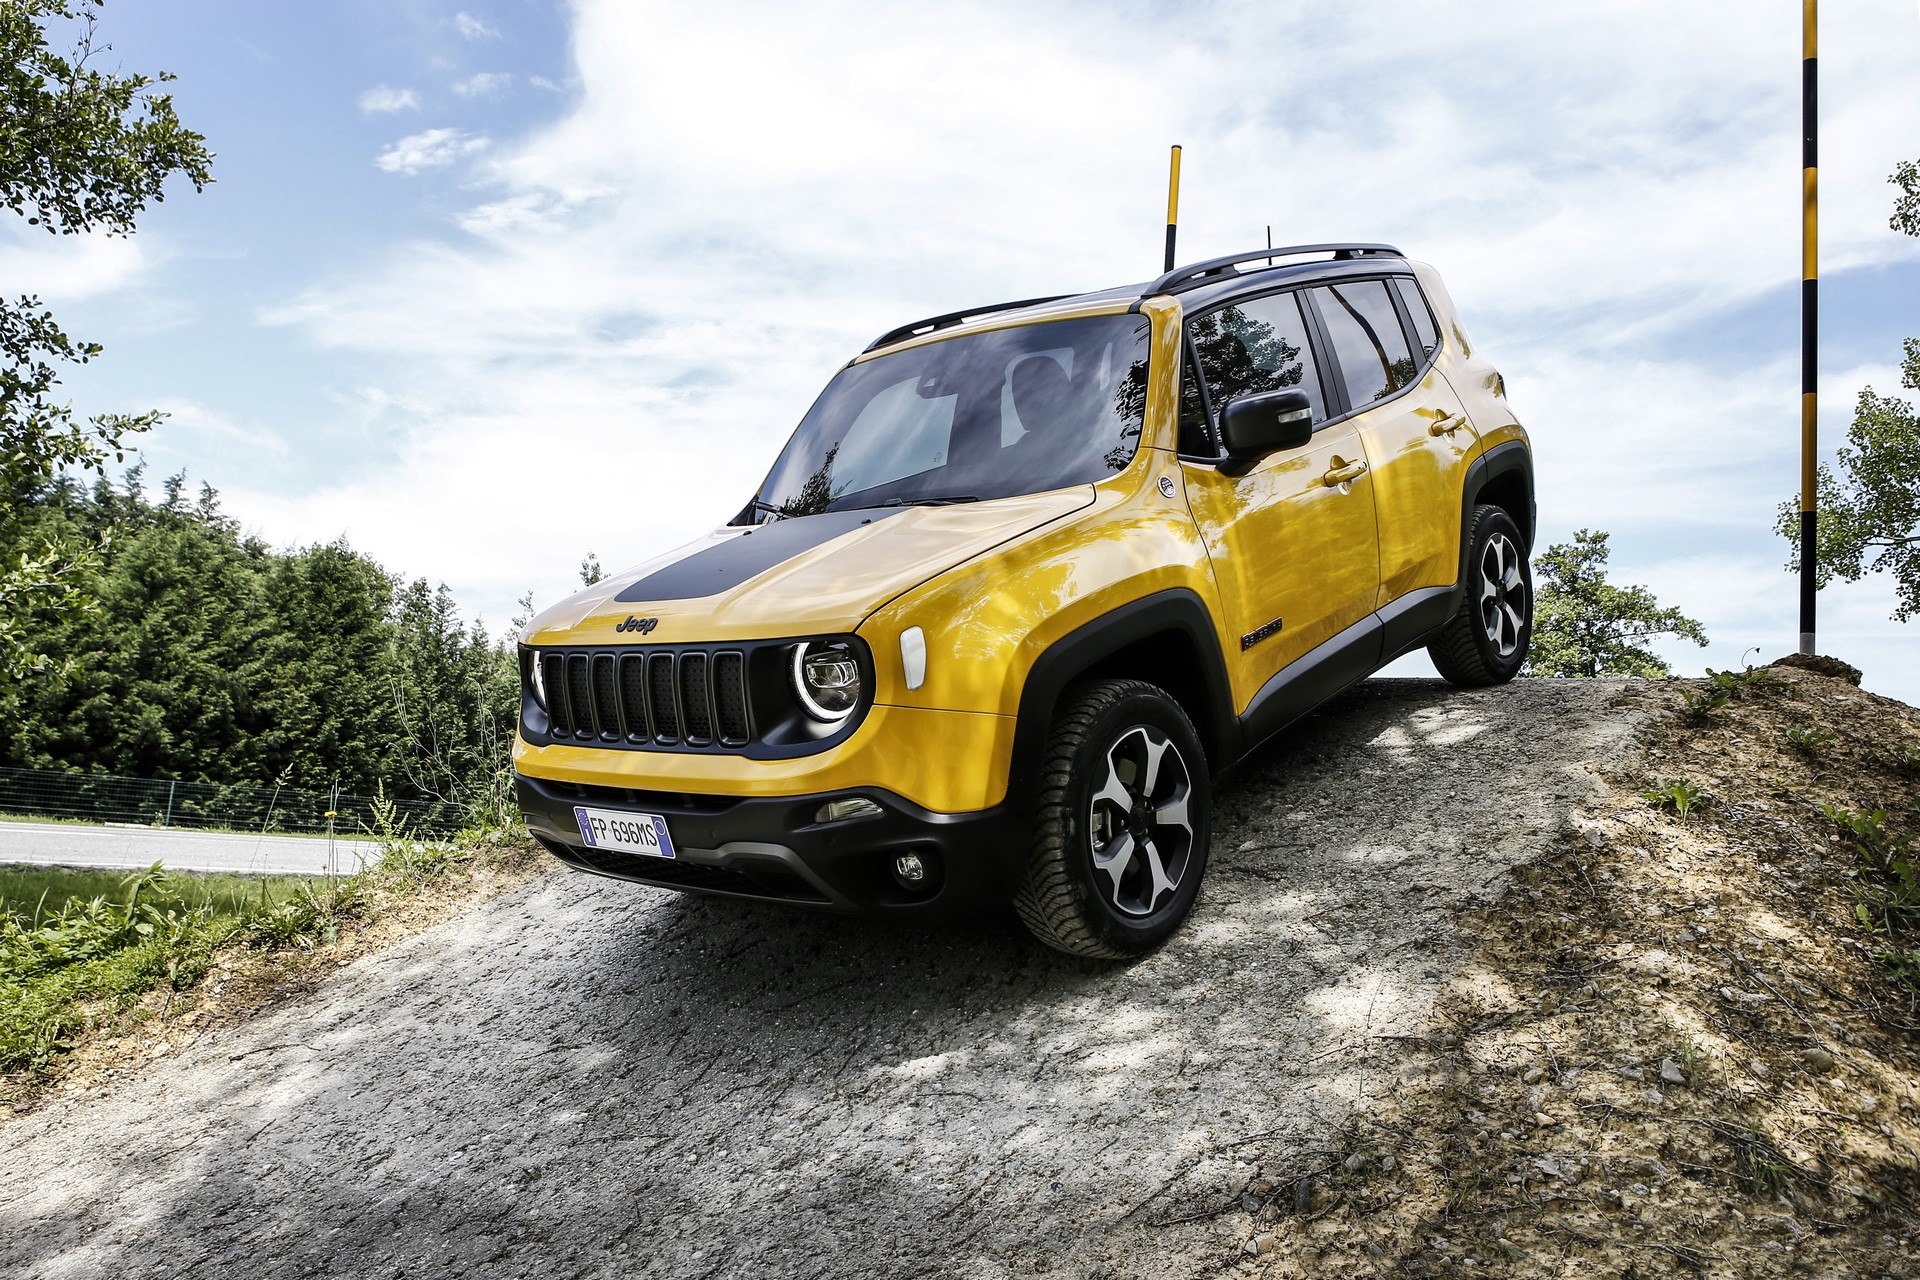 Jeep Renegade facelift 2019 (49)